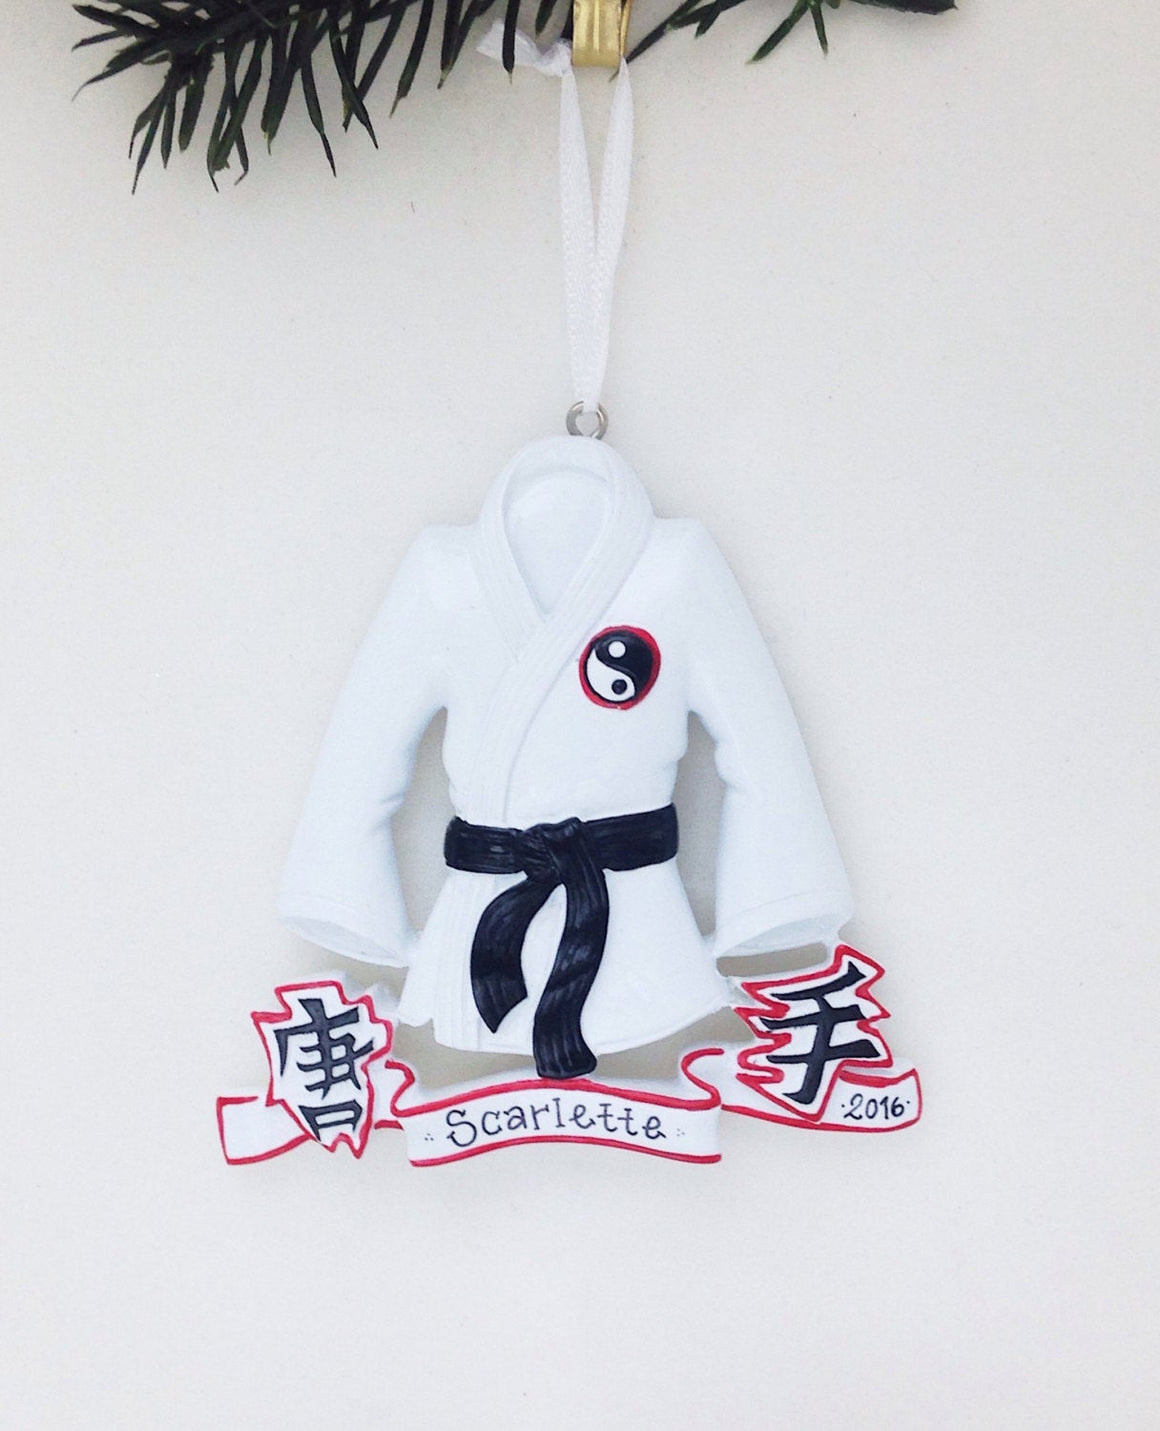 Martial Arts Personalized Christmas Ornament / Karate Ornament / Black Belt